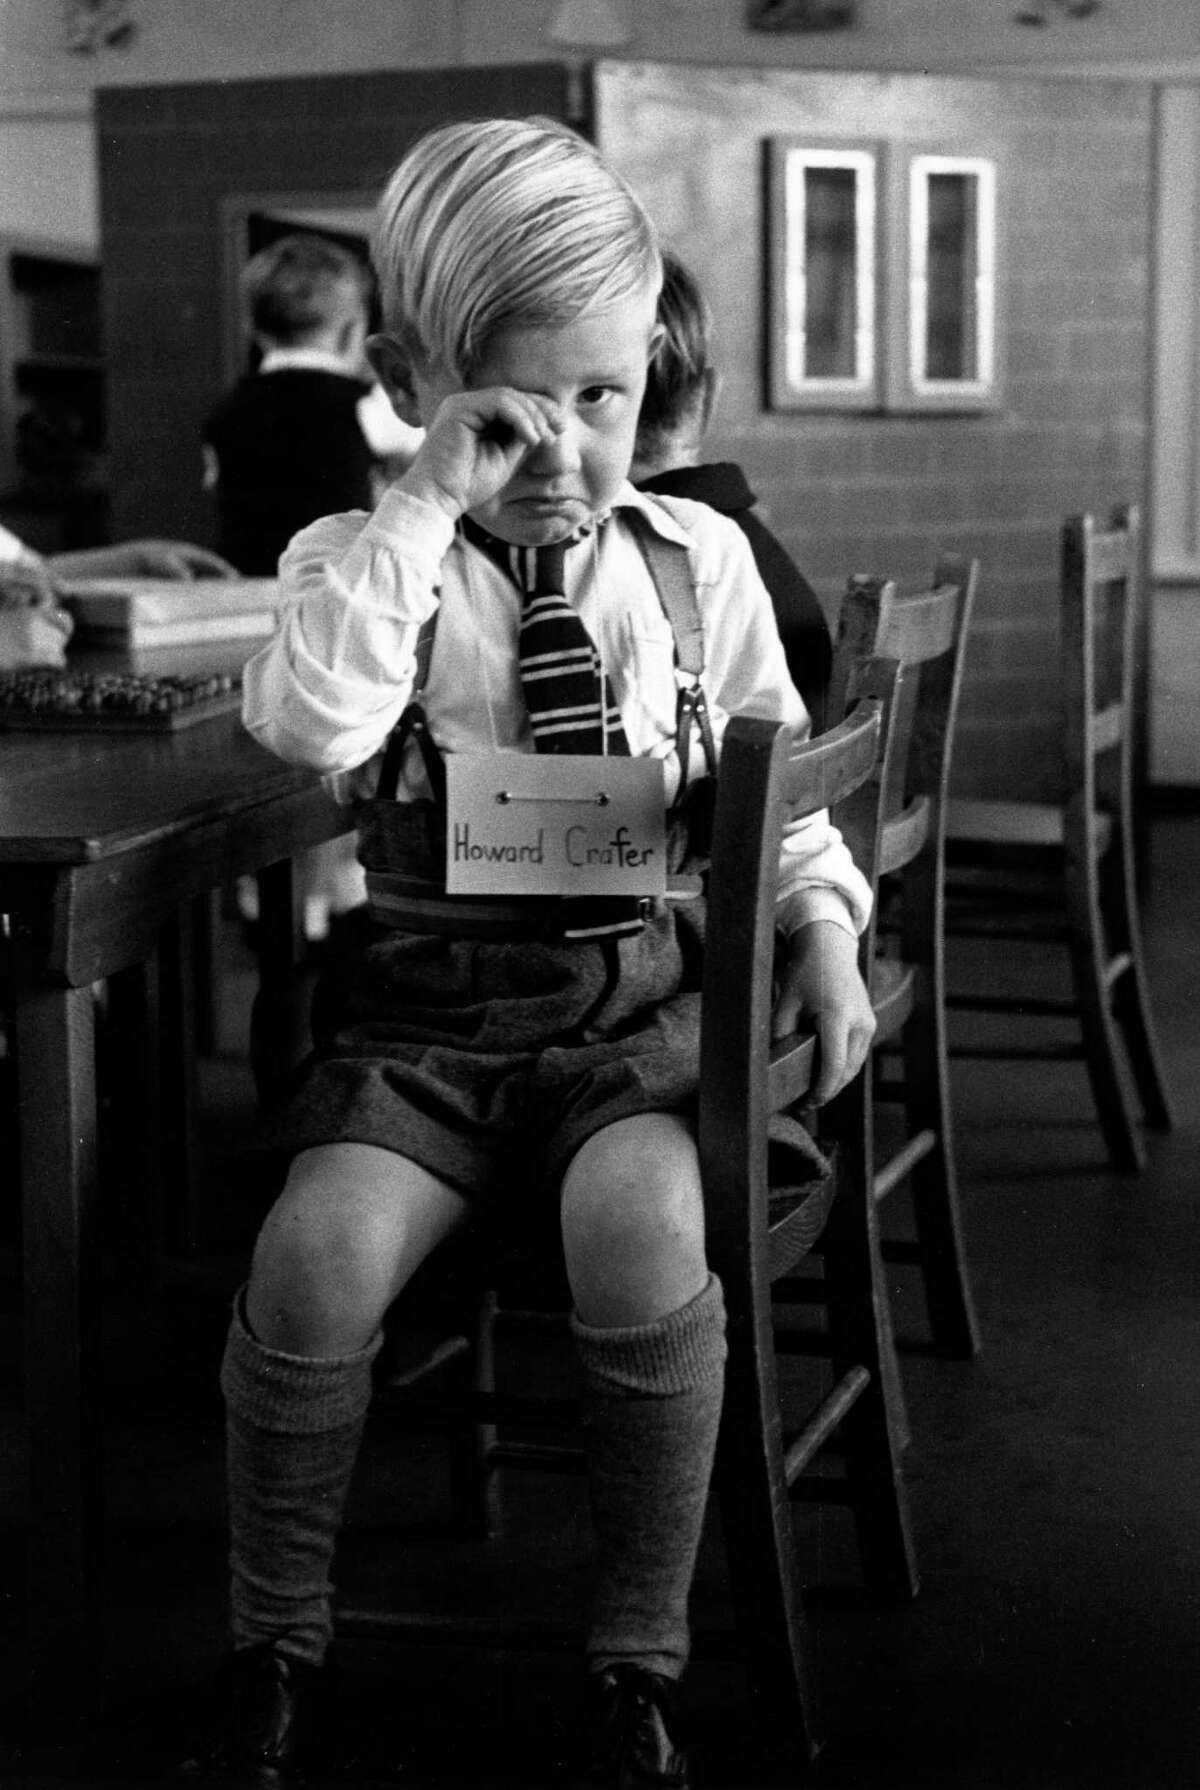 A five-year-old boy in tears on his first day at school at St Nicholas County Primary School in Loughton, Essex